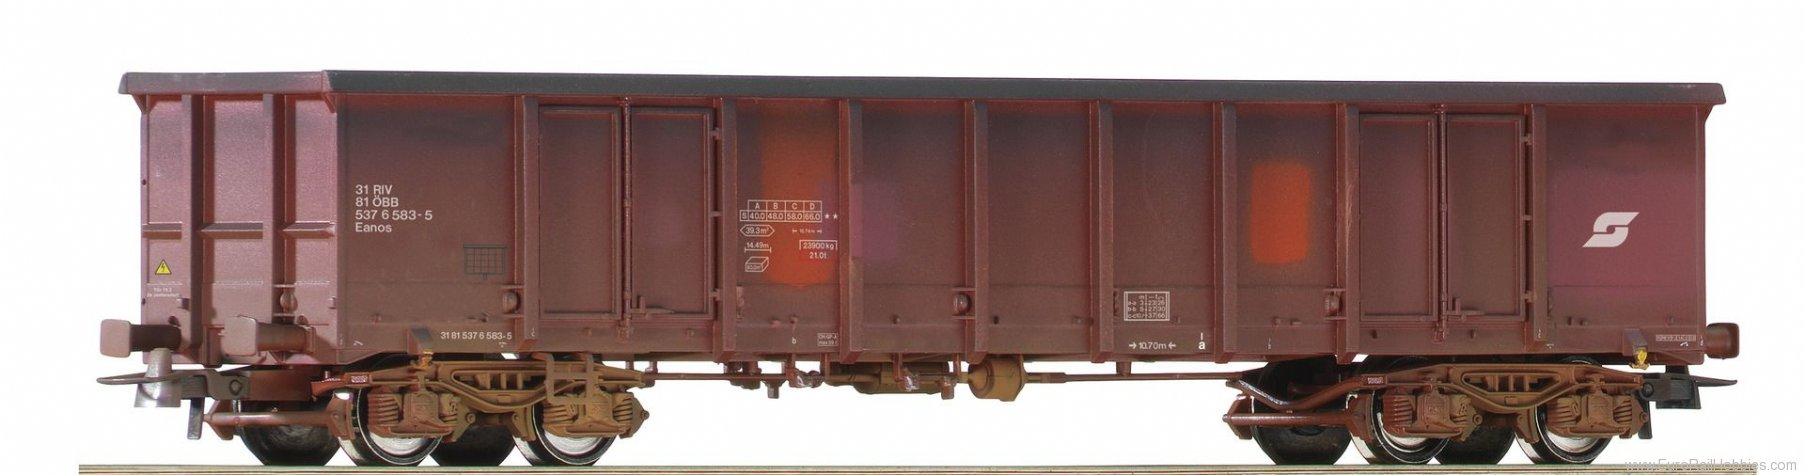 Roco 75993 31815377 211-2, open goods wagon weathered, O